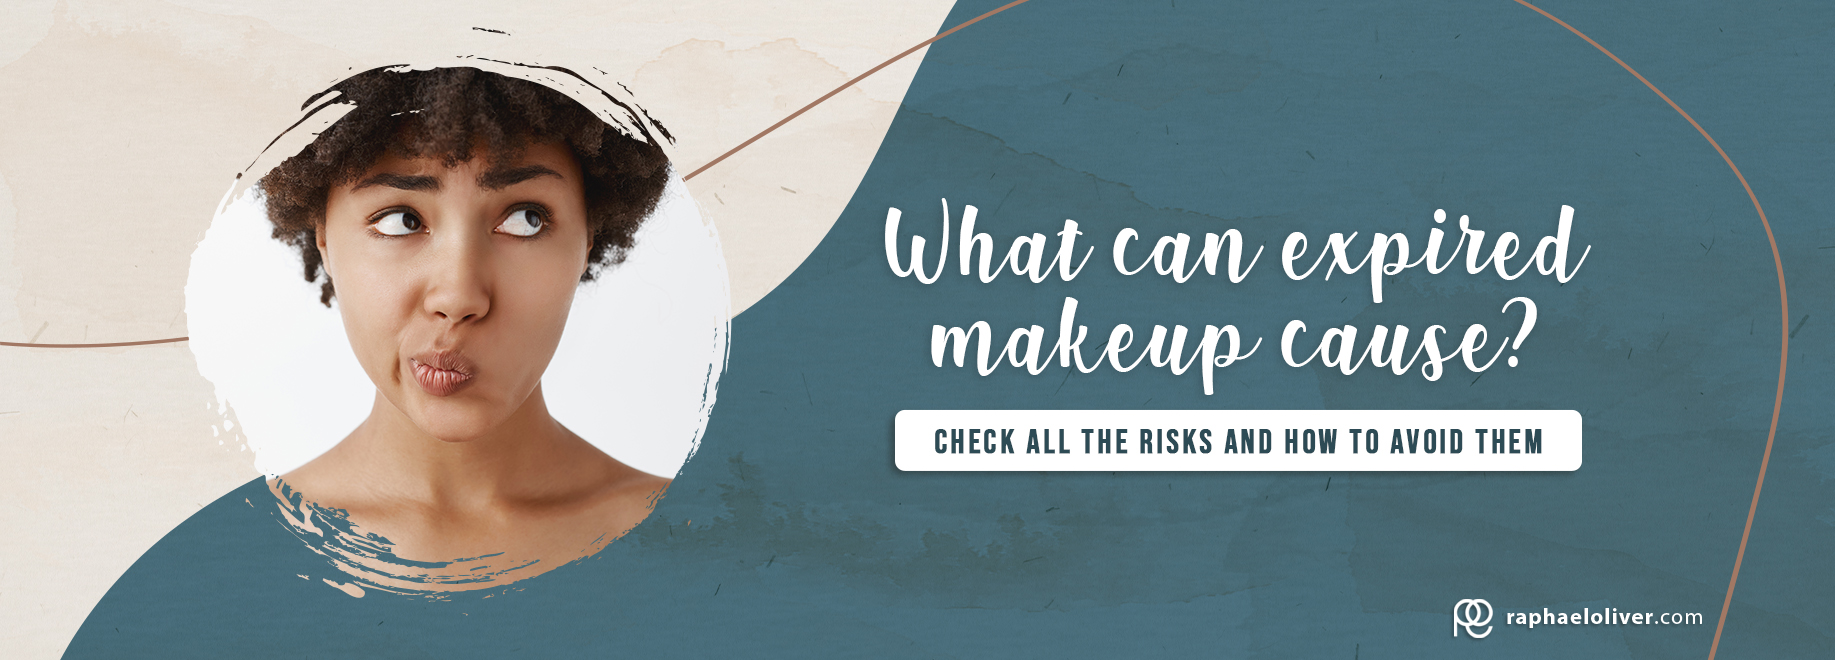 What can expired makeup cause?